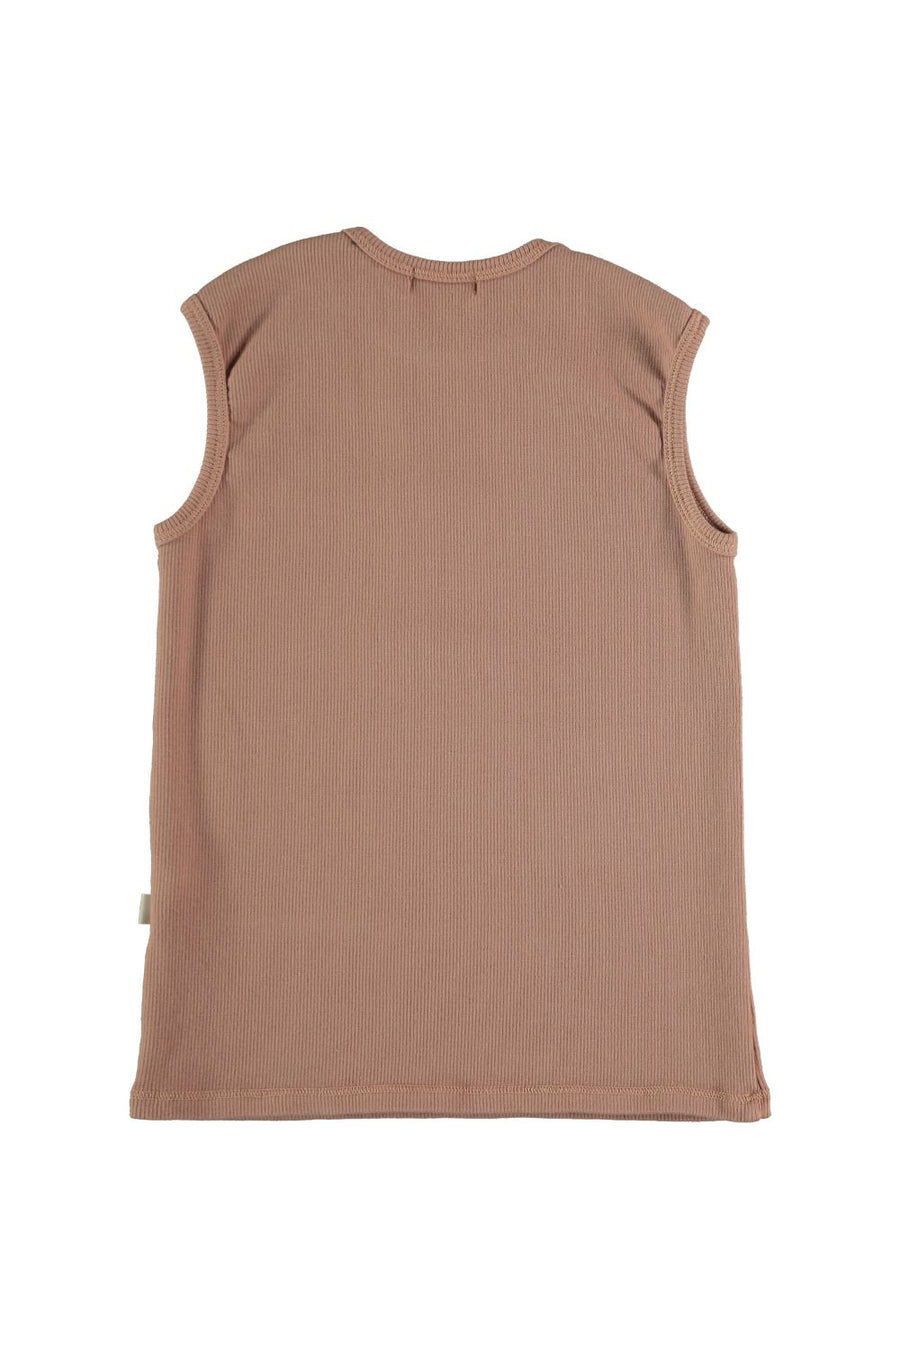 ORGANIC RIB SLEEVELESS T-SHIRT